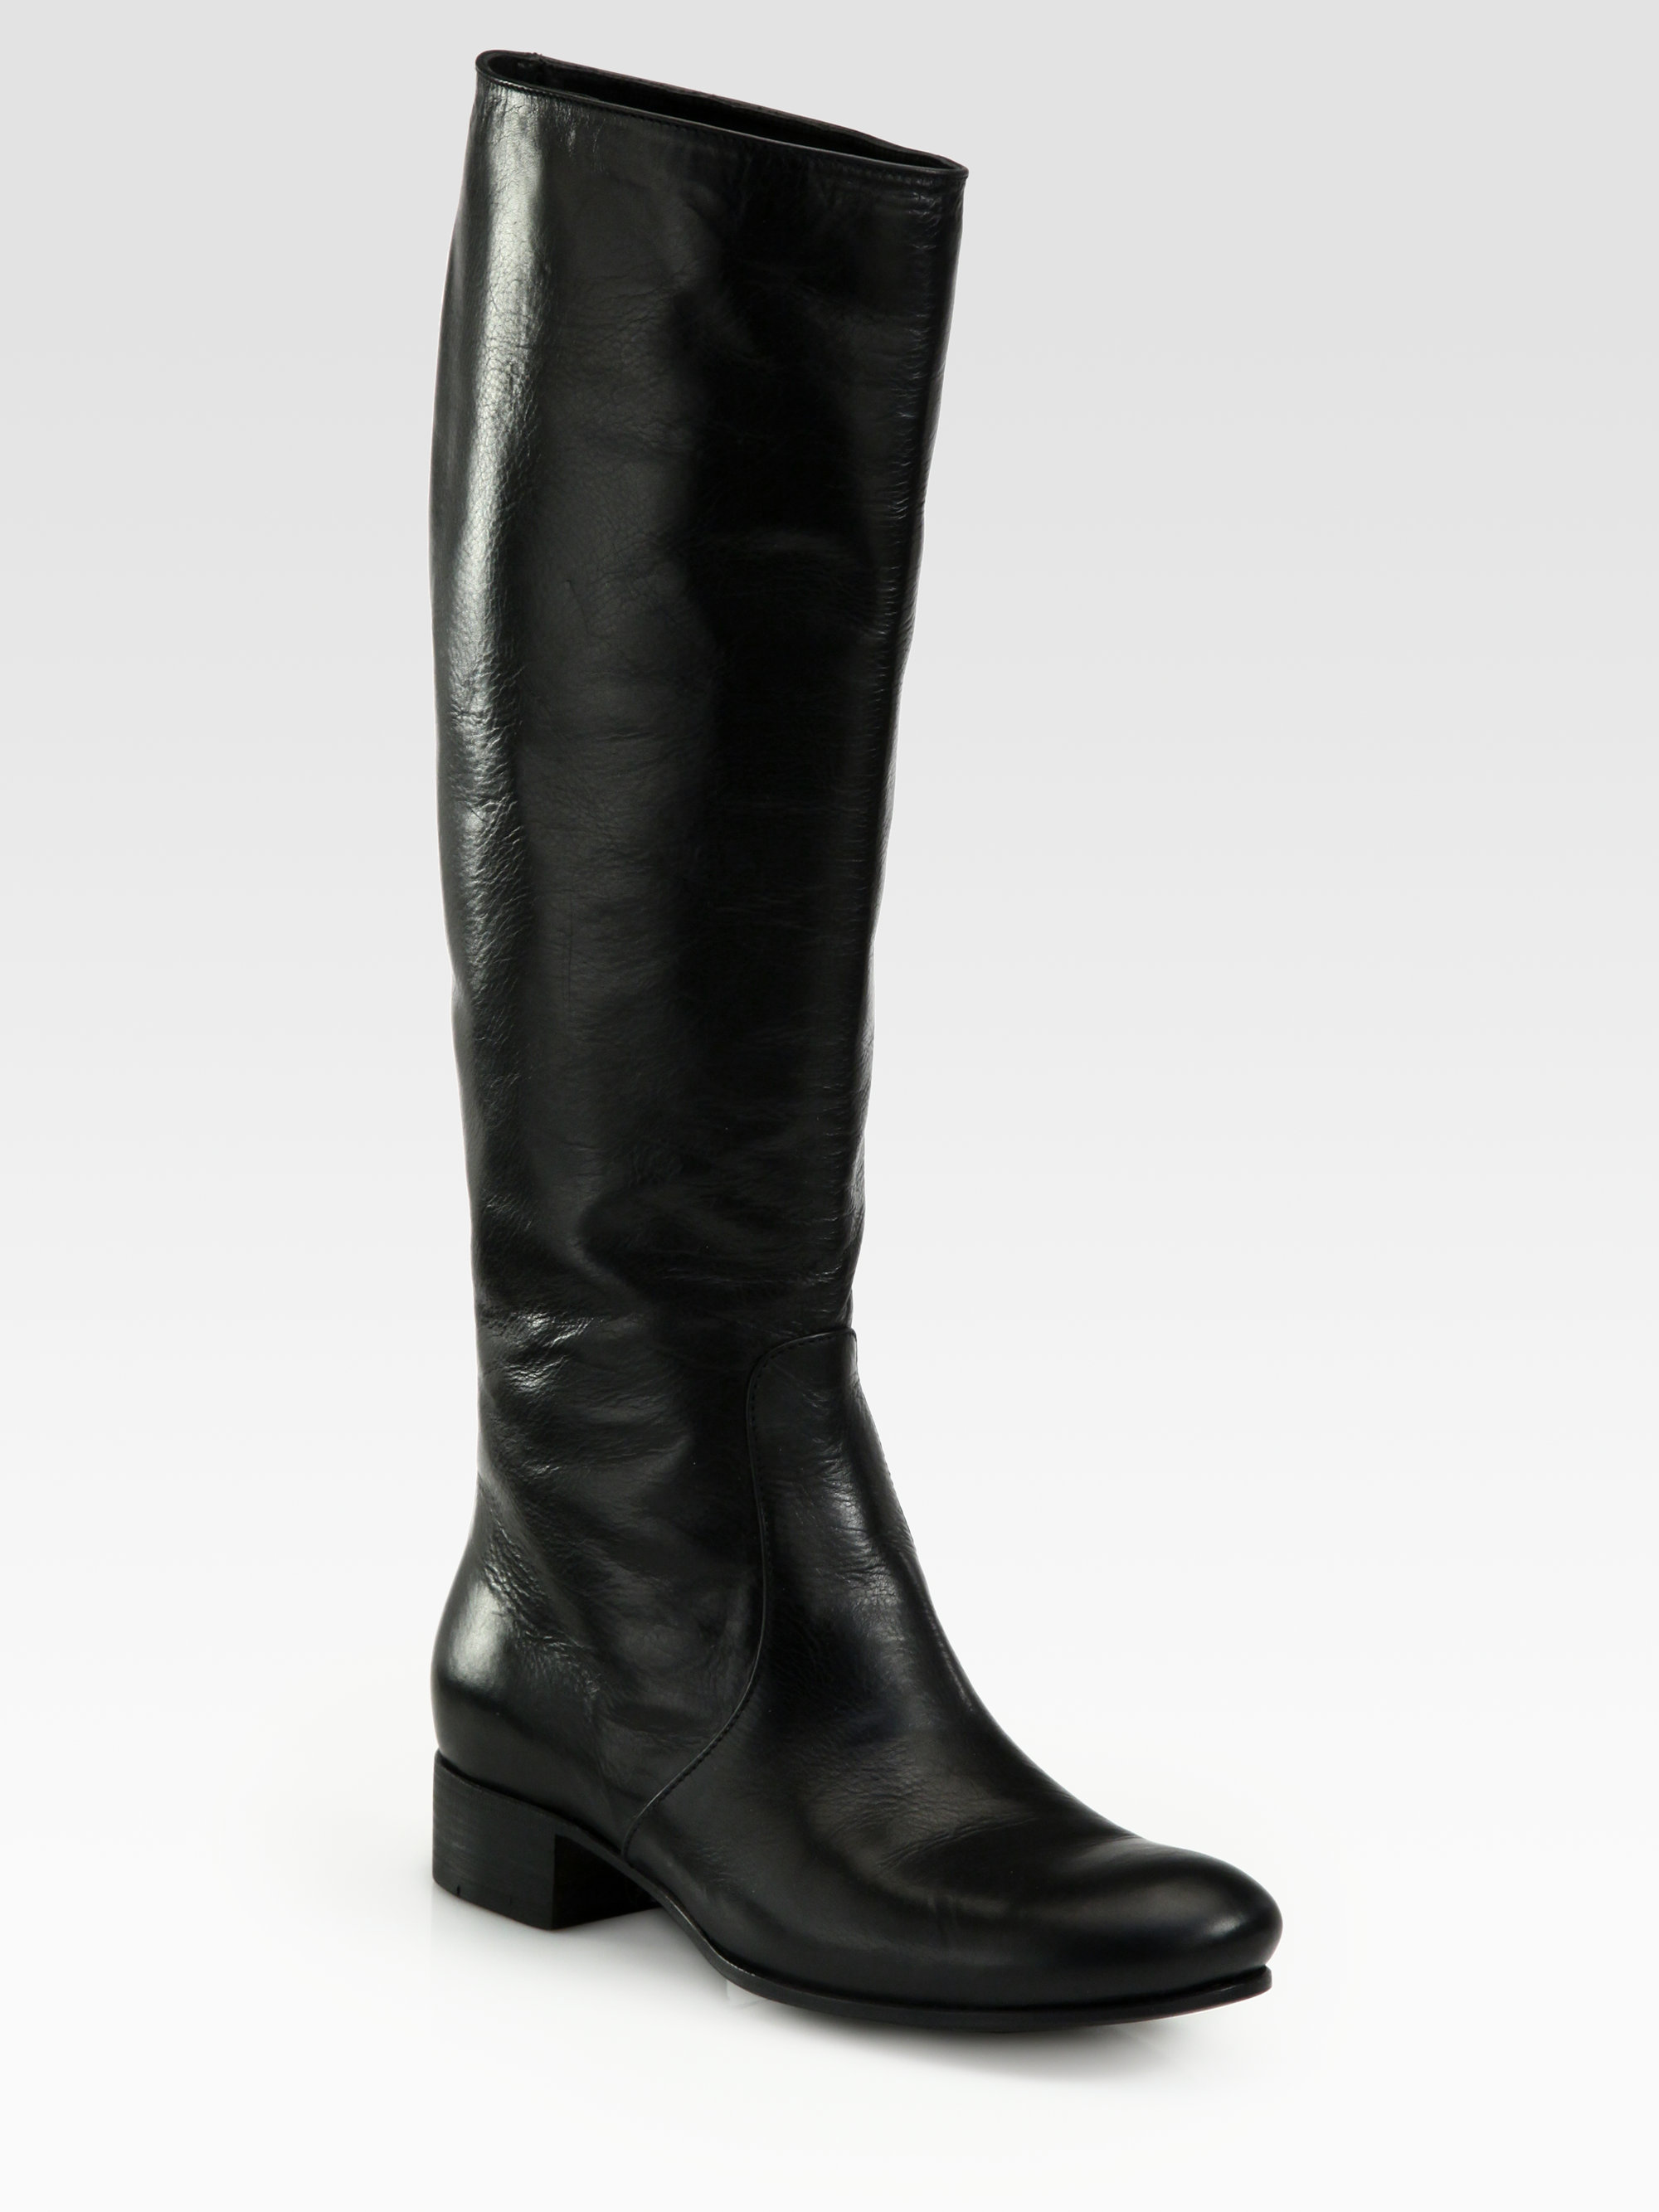 Prada Tall Leather Riding Boots In Black Lyst